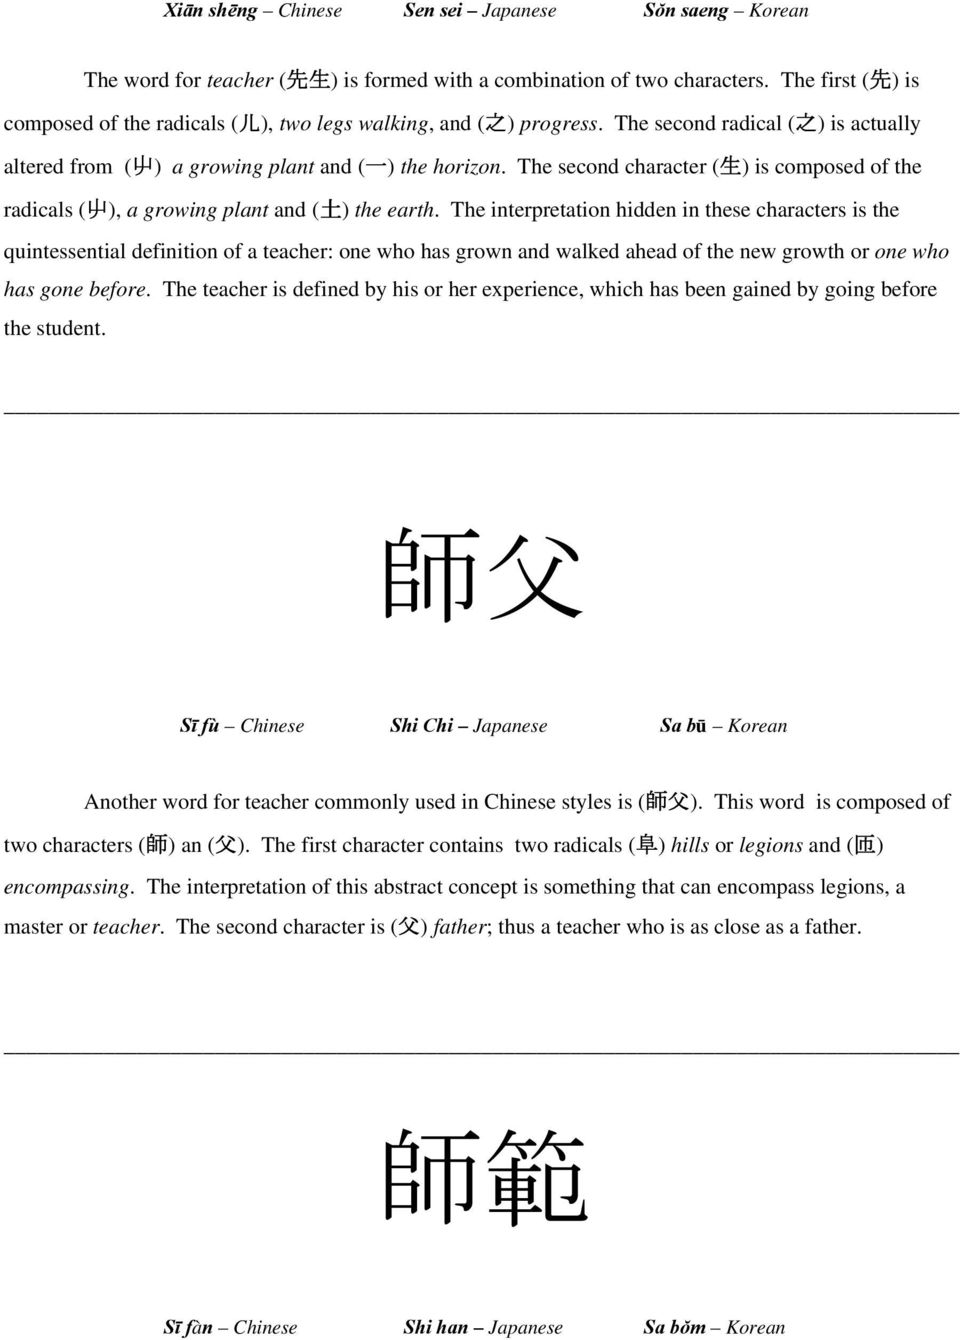 Essential Chinese Characters For The Martial Artist Pdf